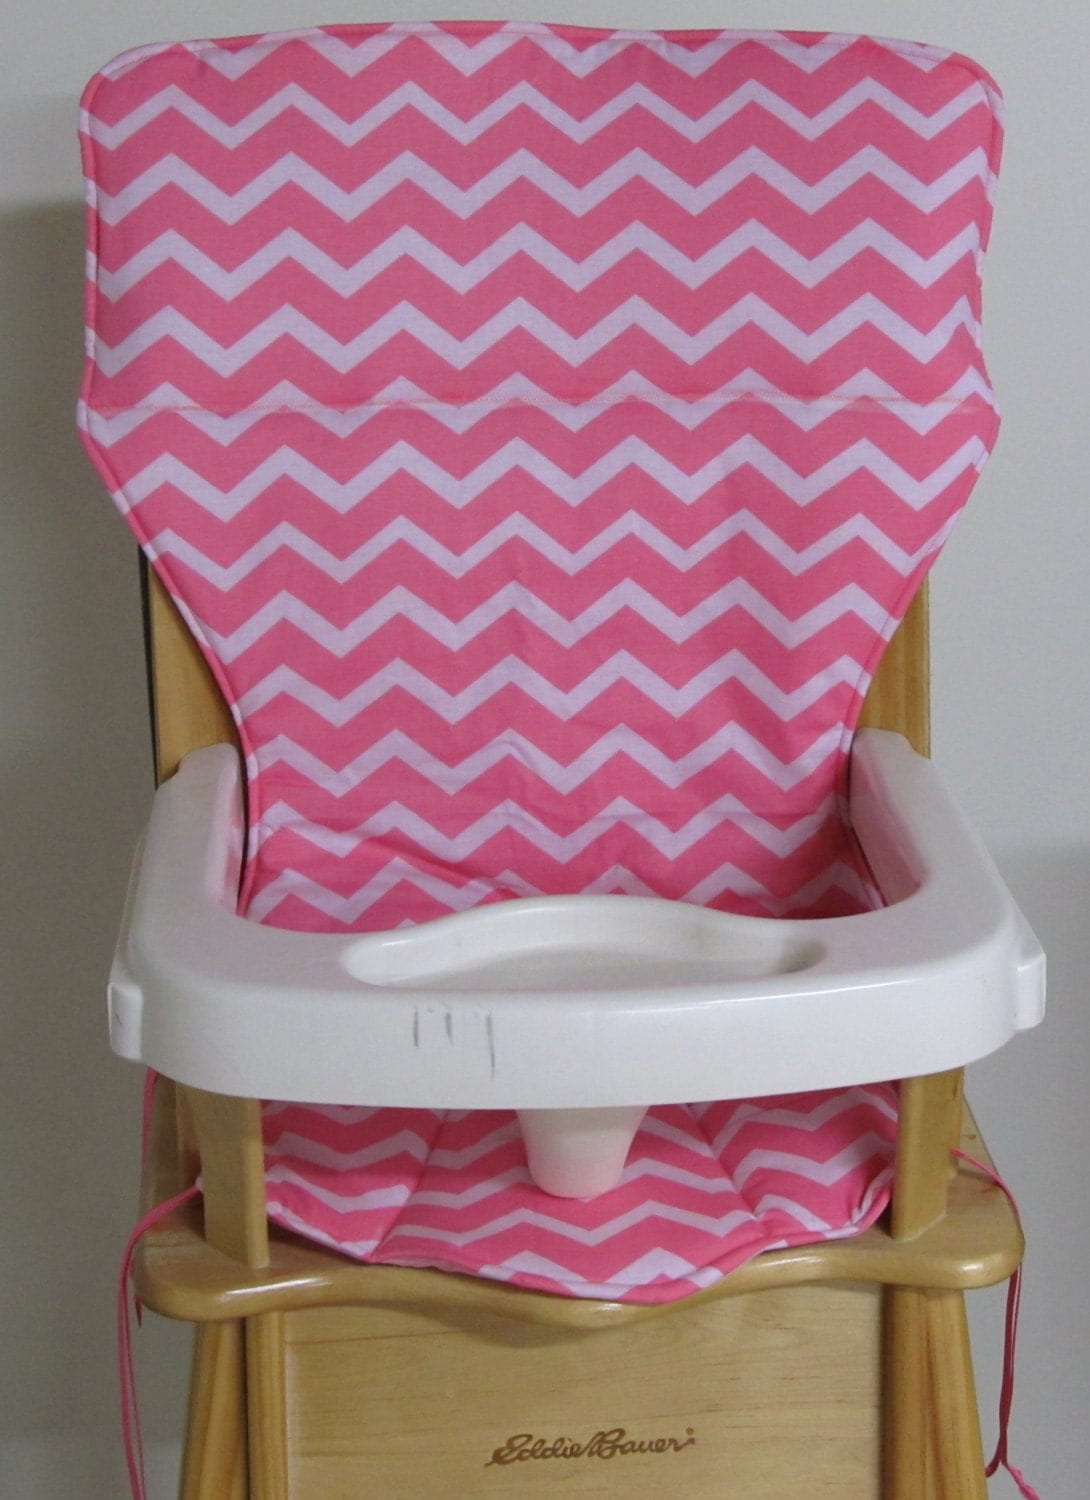 Chair Pad Covers Eddie Bauer High Chair Pad Replacement Cover Zigzag Coral